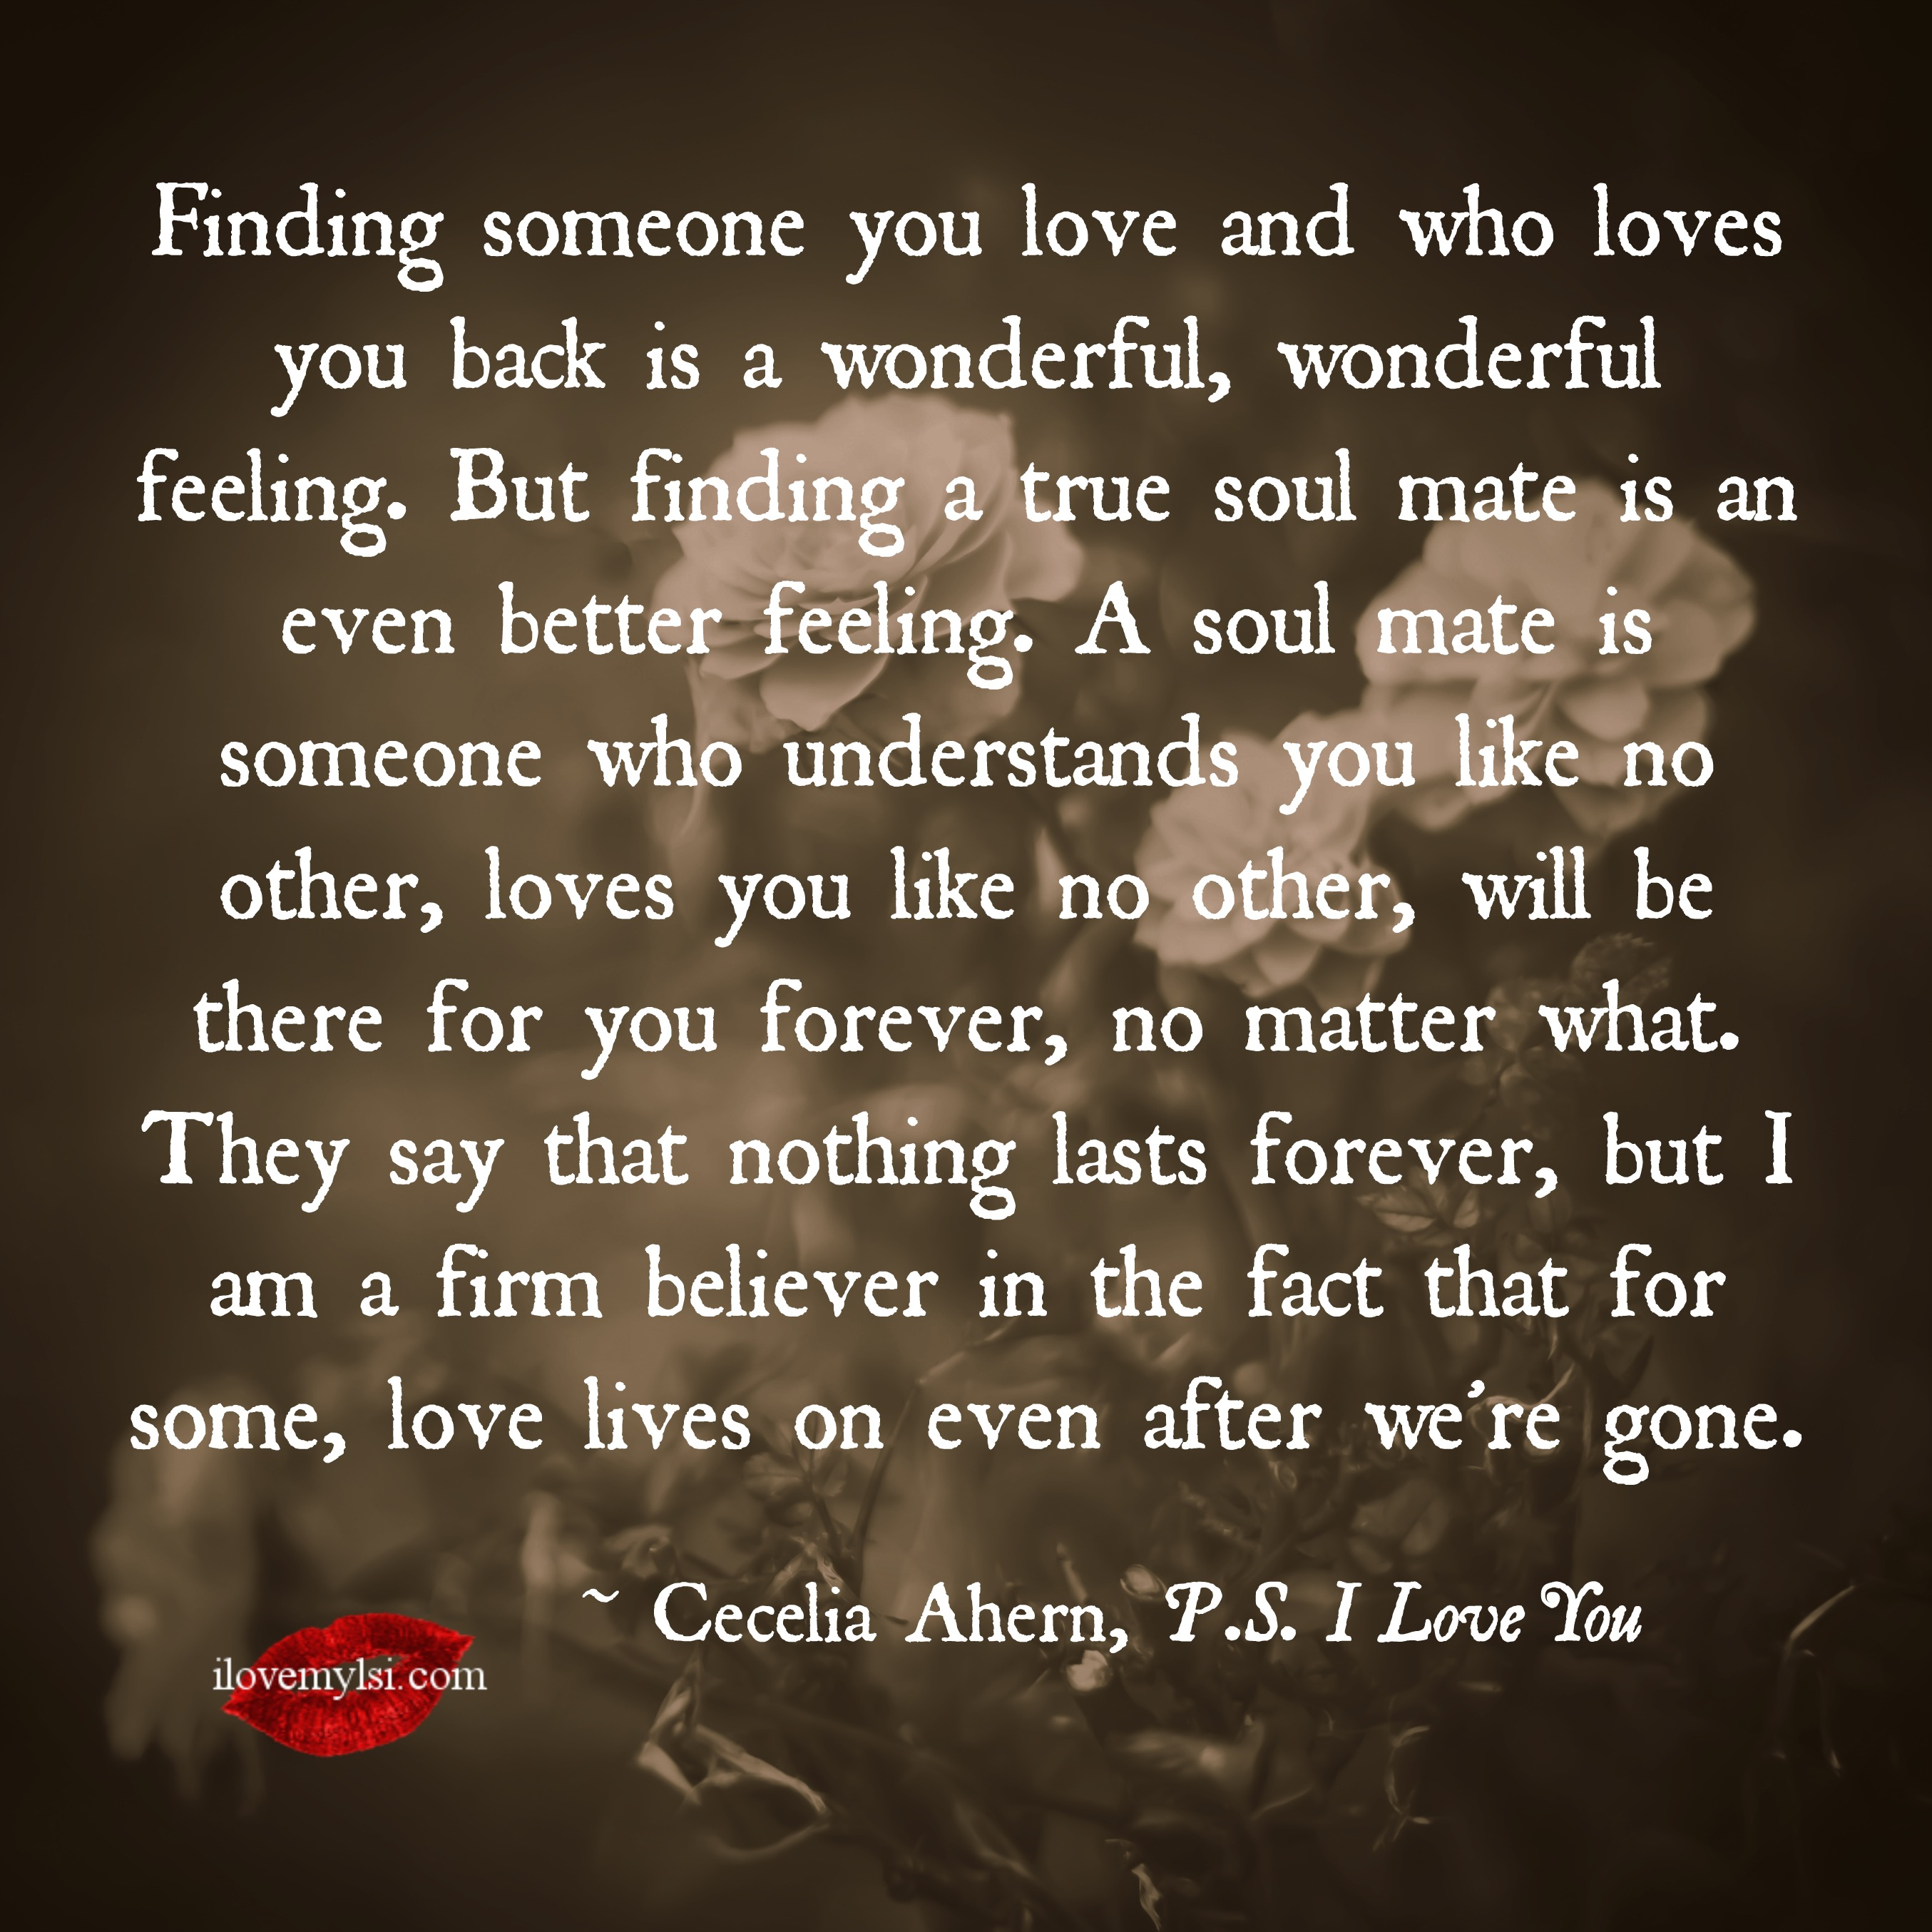 Love Quotes For My Love The 25 Most Romantic Love Quotes You Will Ever Read Page 6 Of